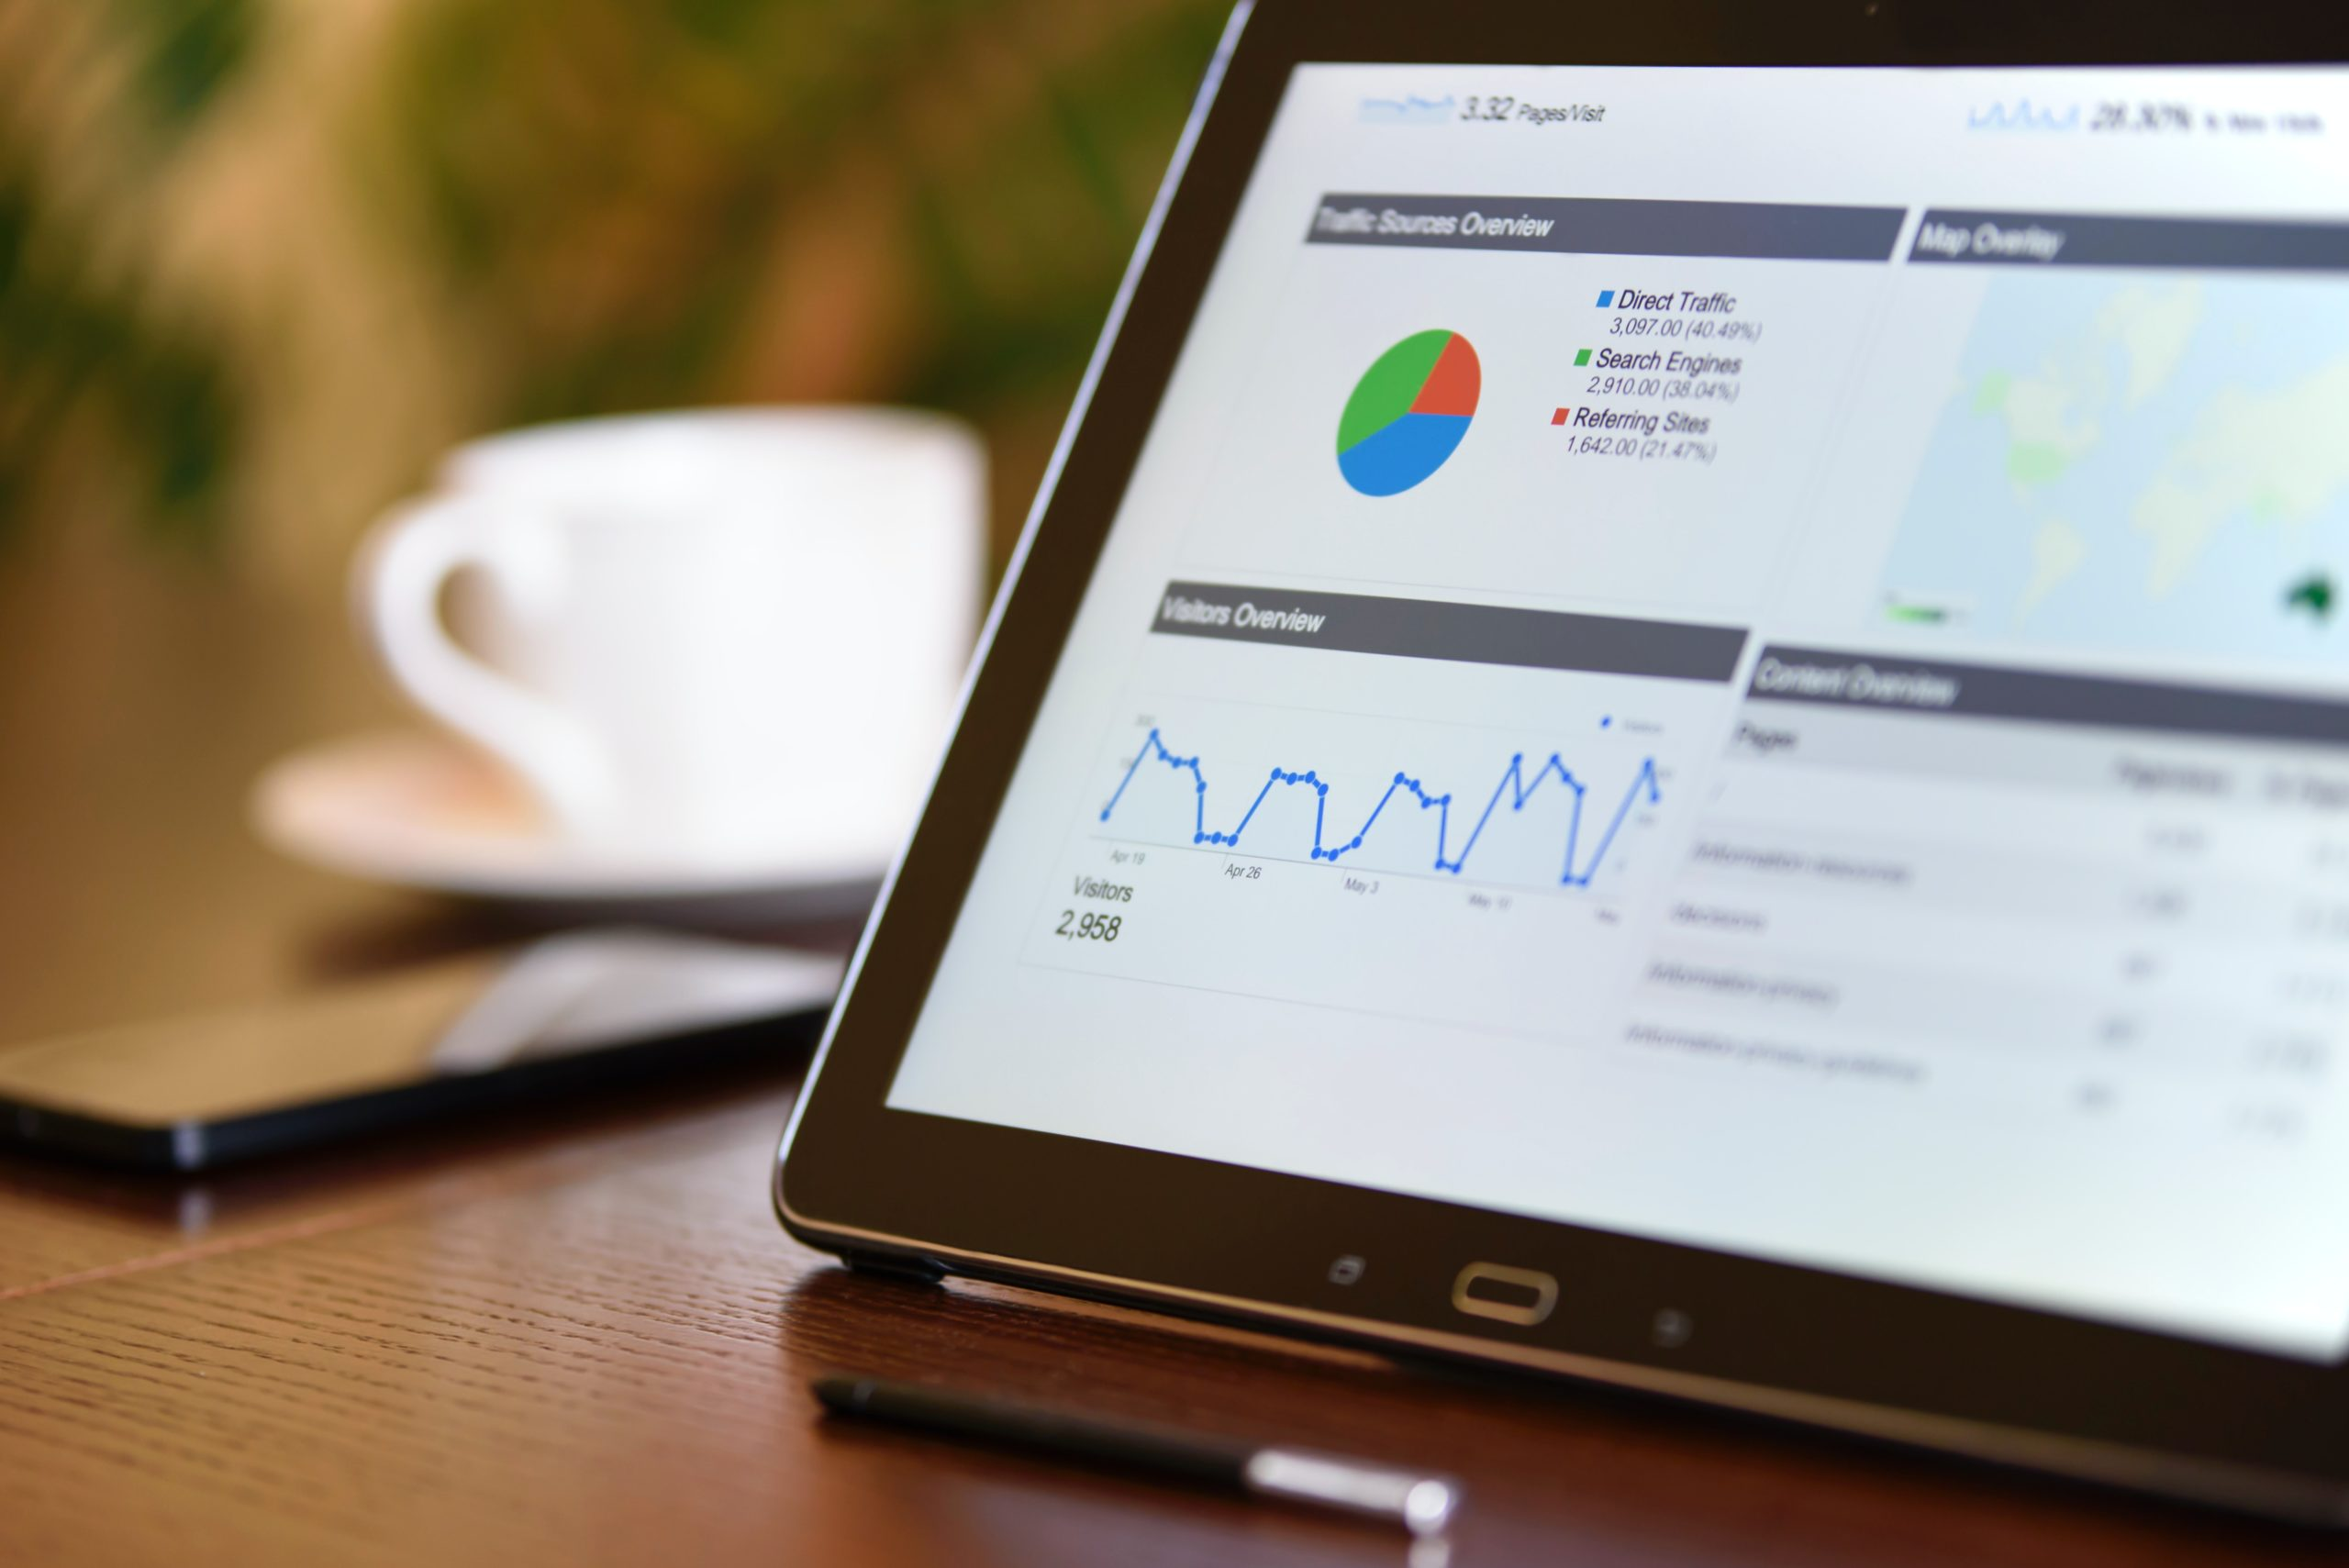 SEO Analytics Charts and Reports on Tablet Screen